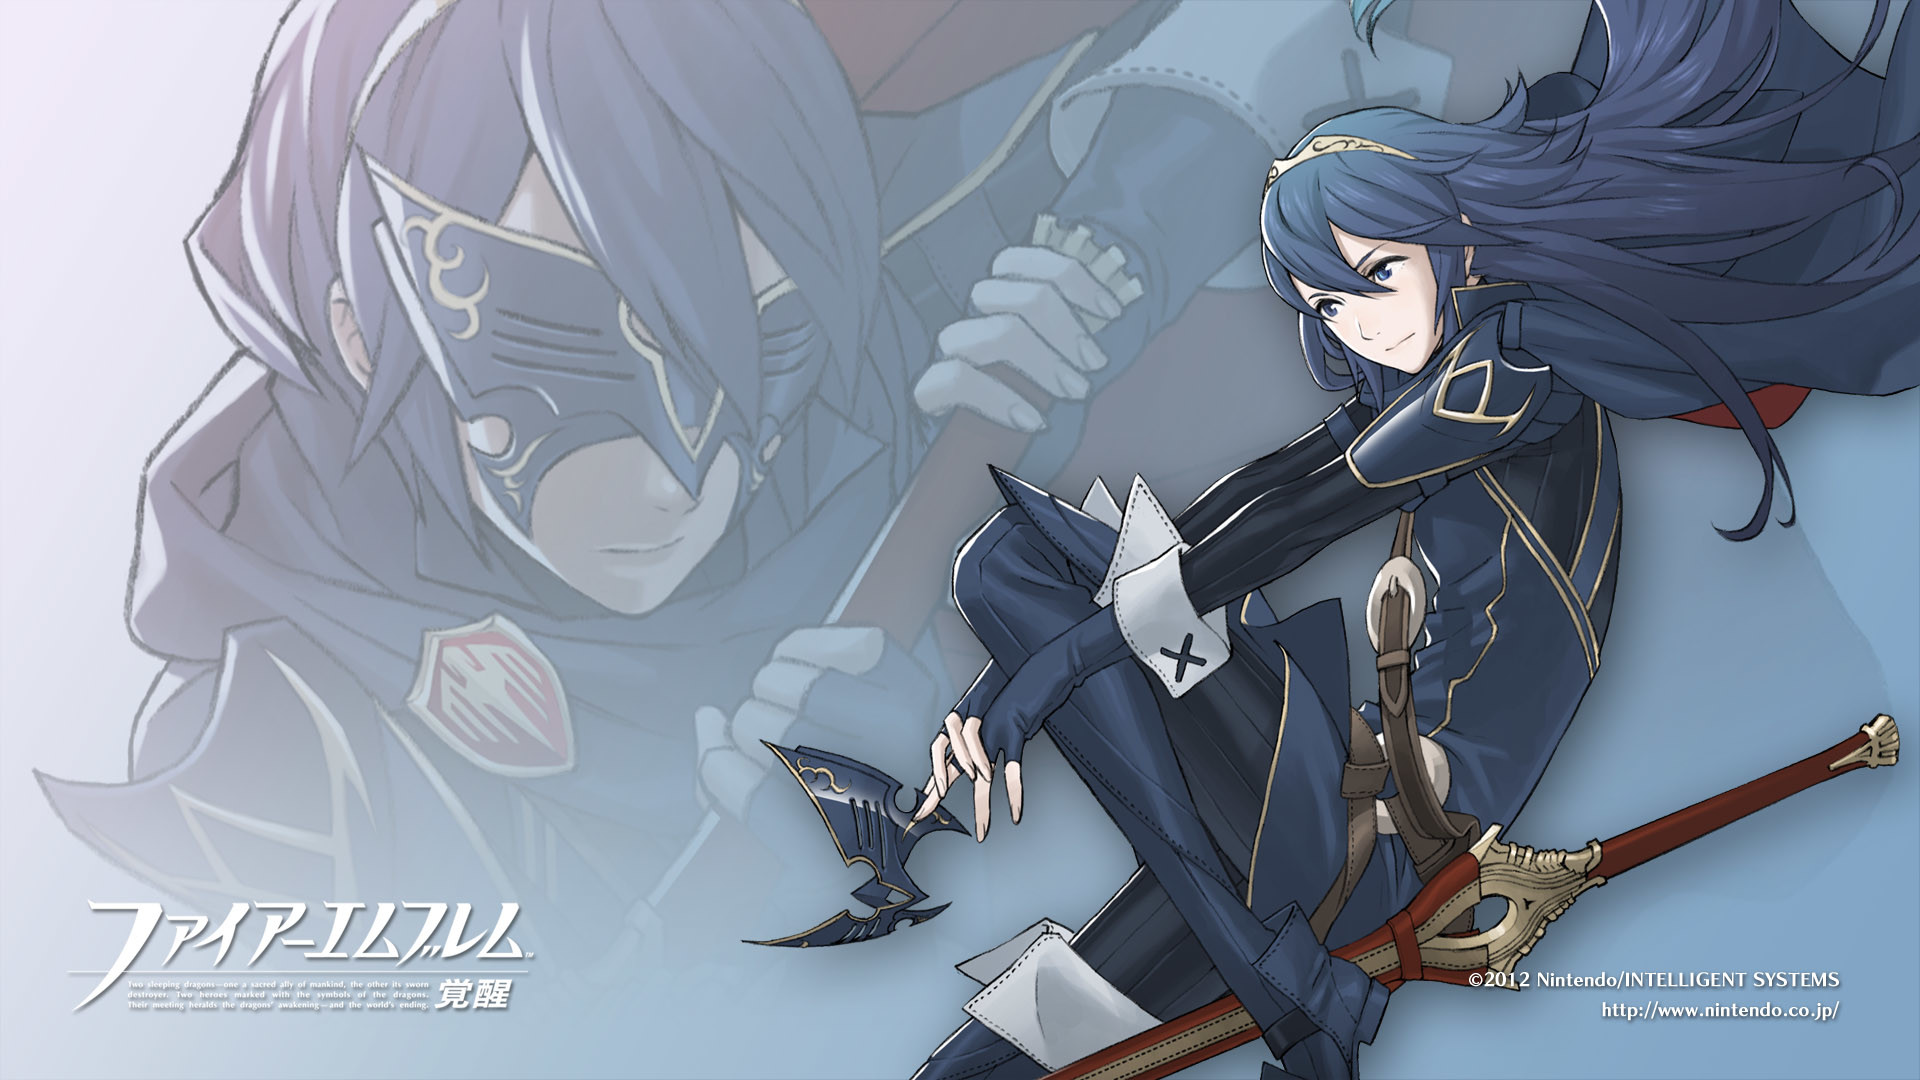 1920x1080 ... Lucina wallpaper for a long time after recruiting her in the game. It's  not very original, but it was nice and simple, and I like Lucina.